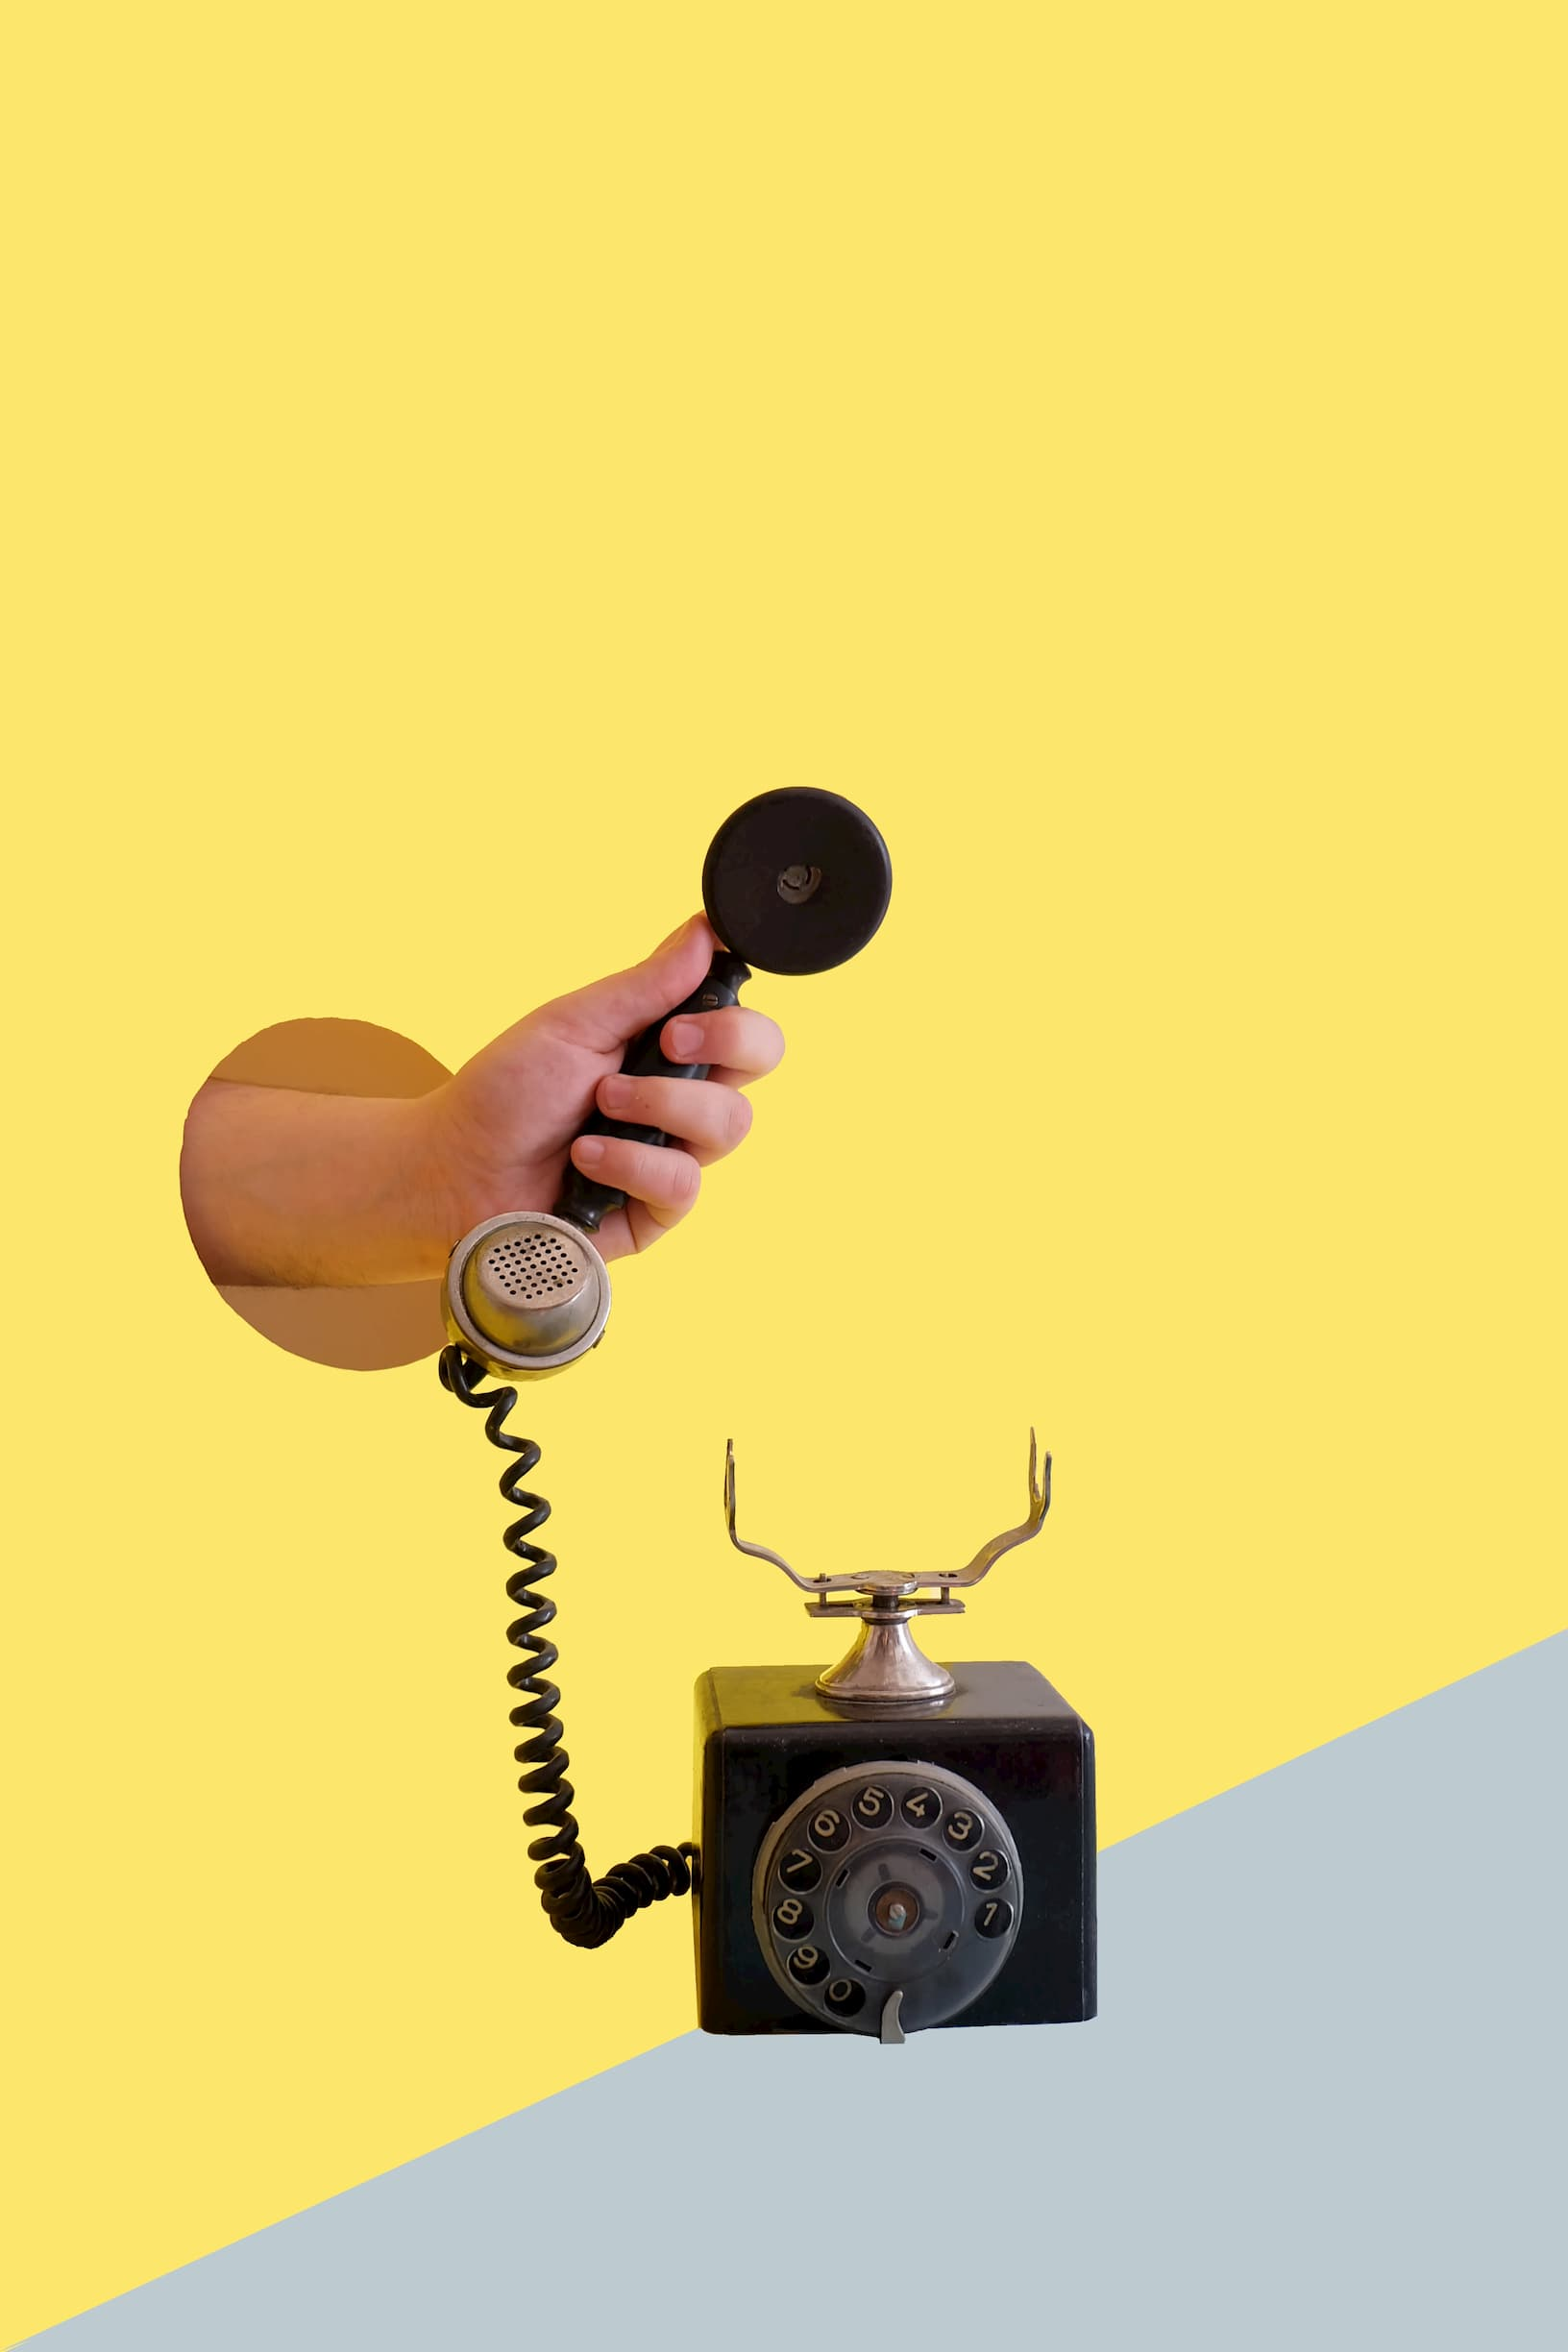 Old style corded phone on white background